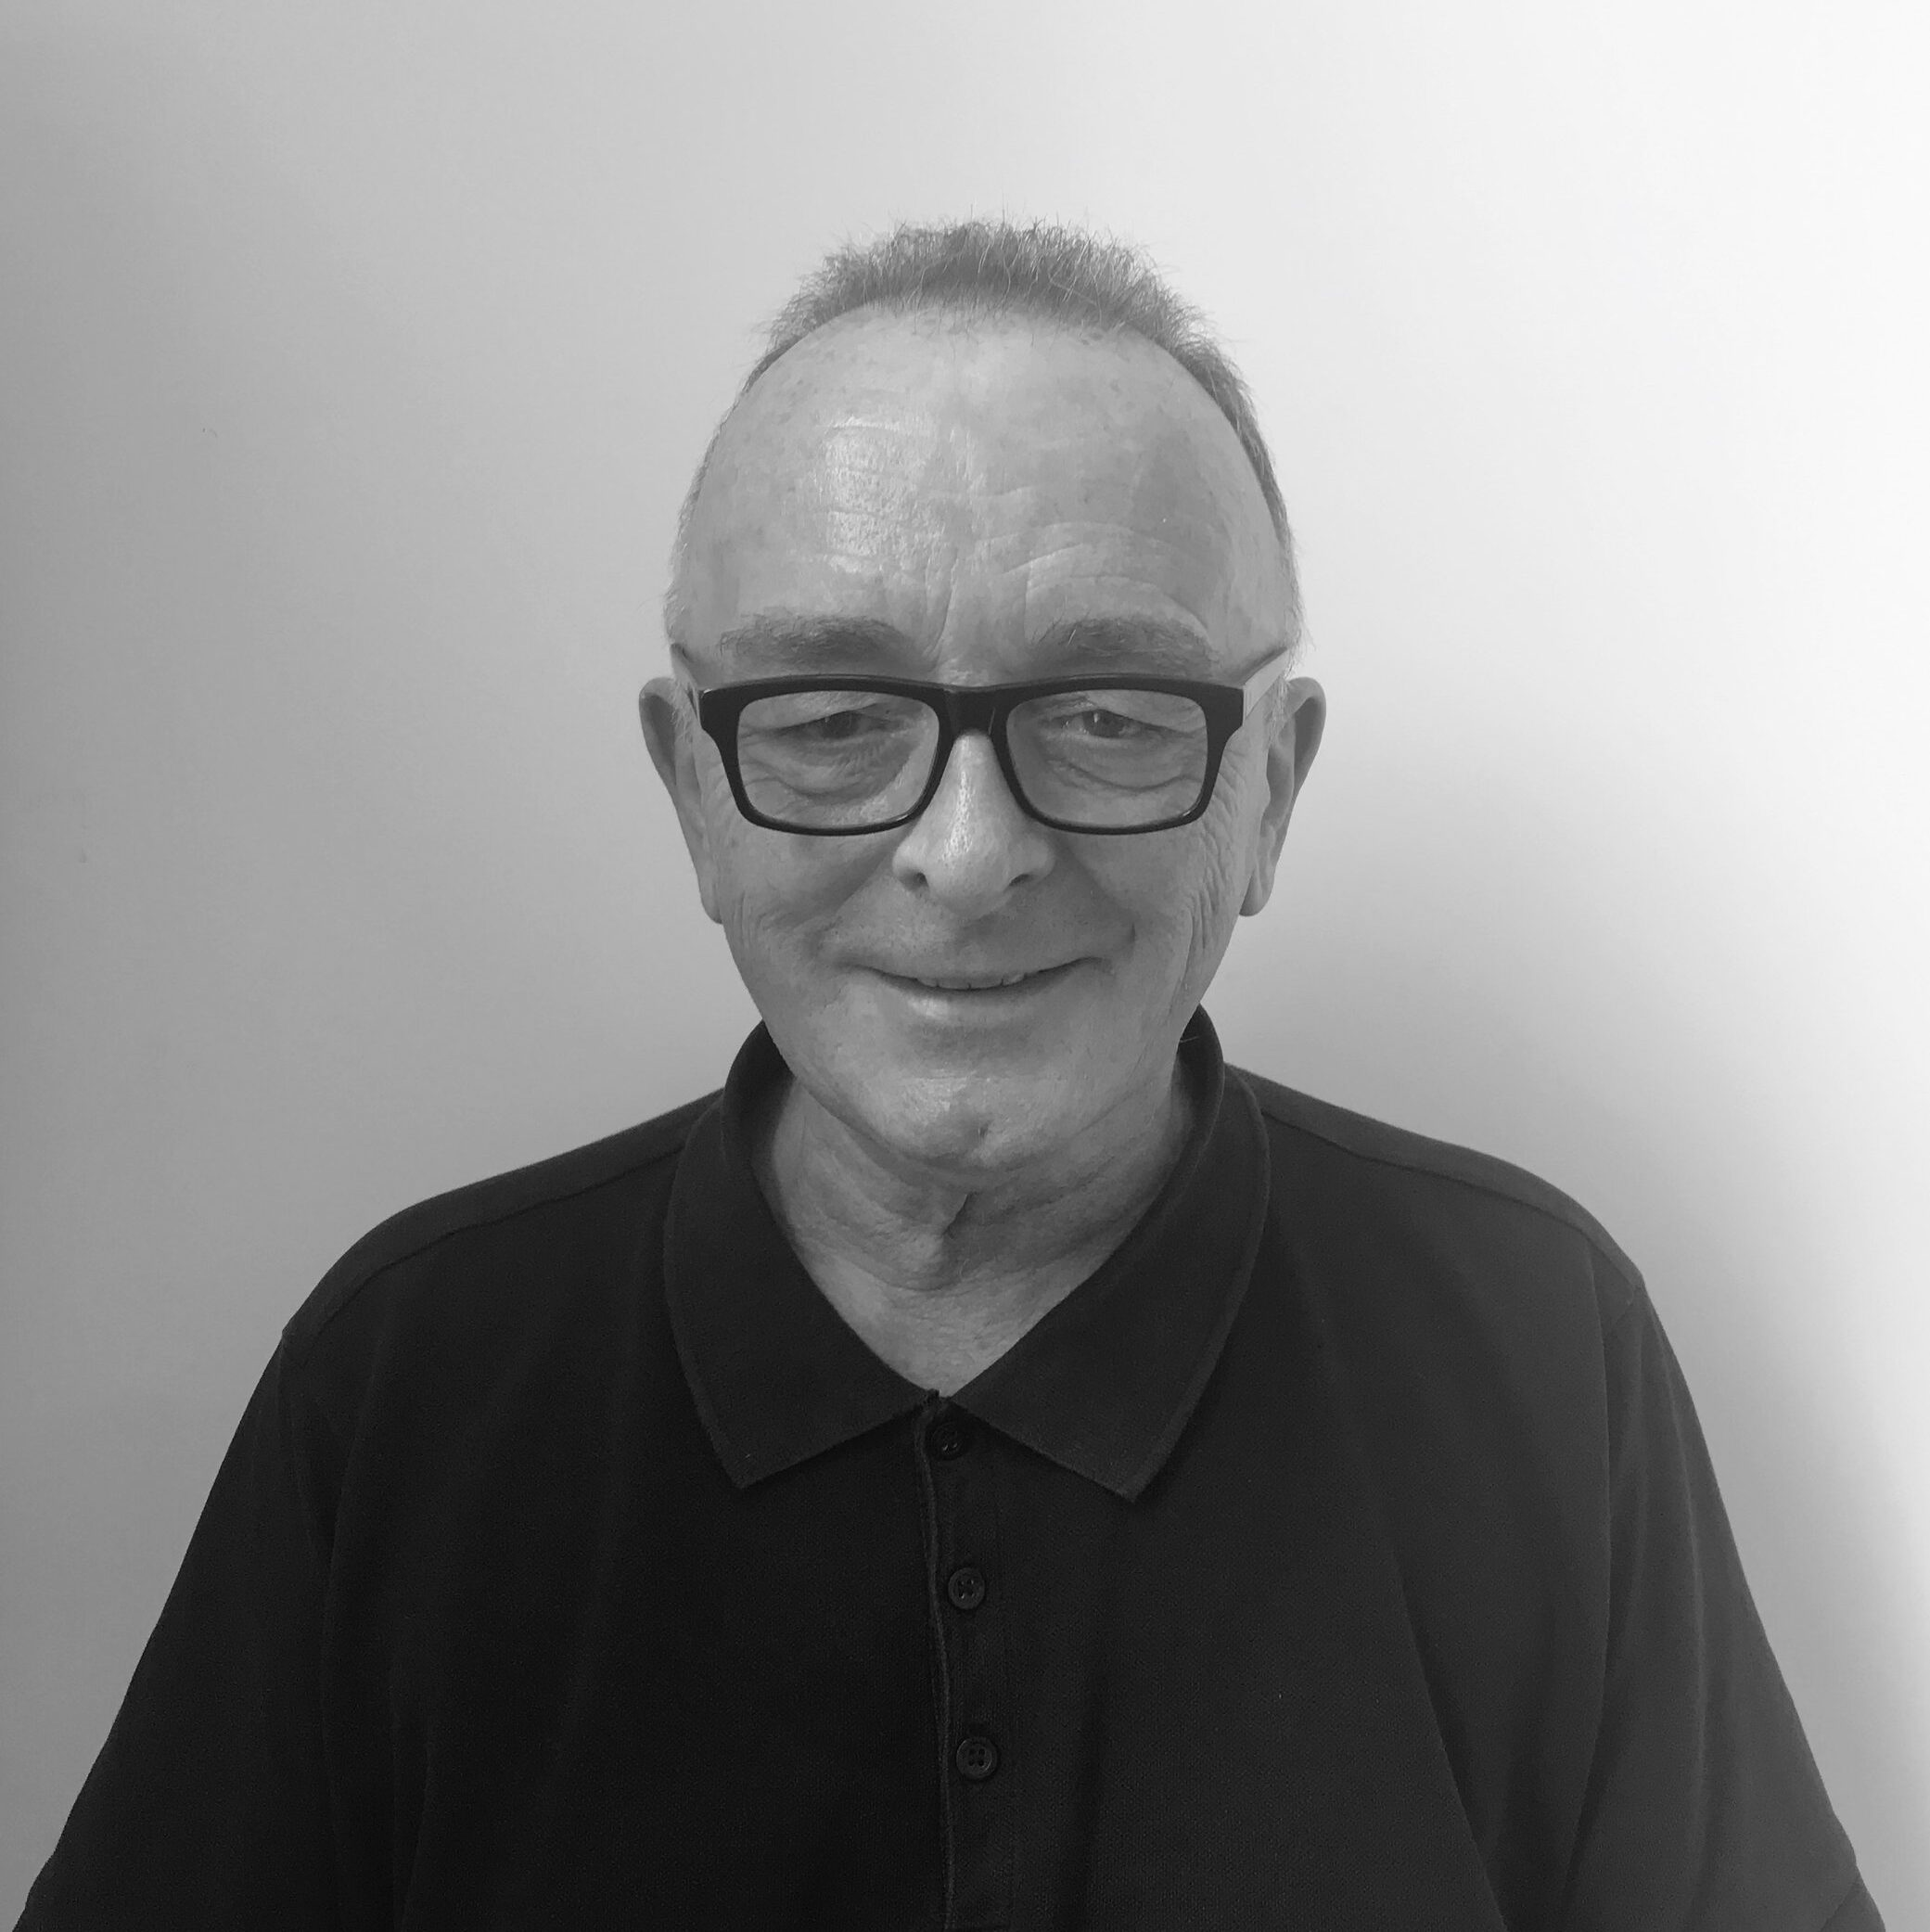 A photo of David, our Branch Resourcer